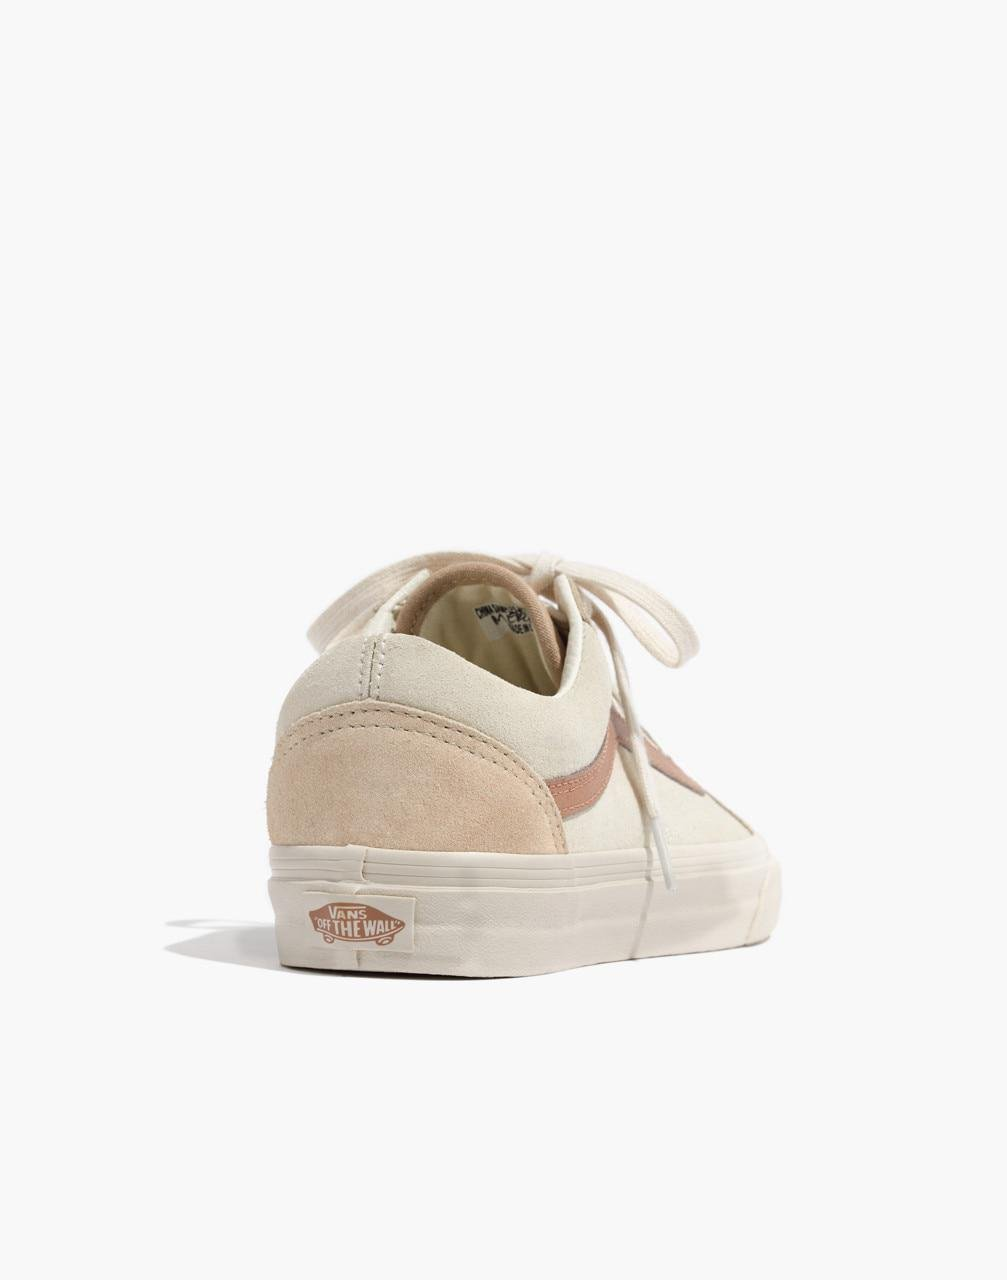 78c45097261 Lyst - Madewell X Vans Unisex Old Skool Lace-up Sneakers In Camel ...